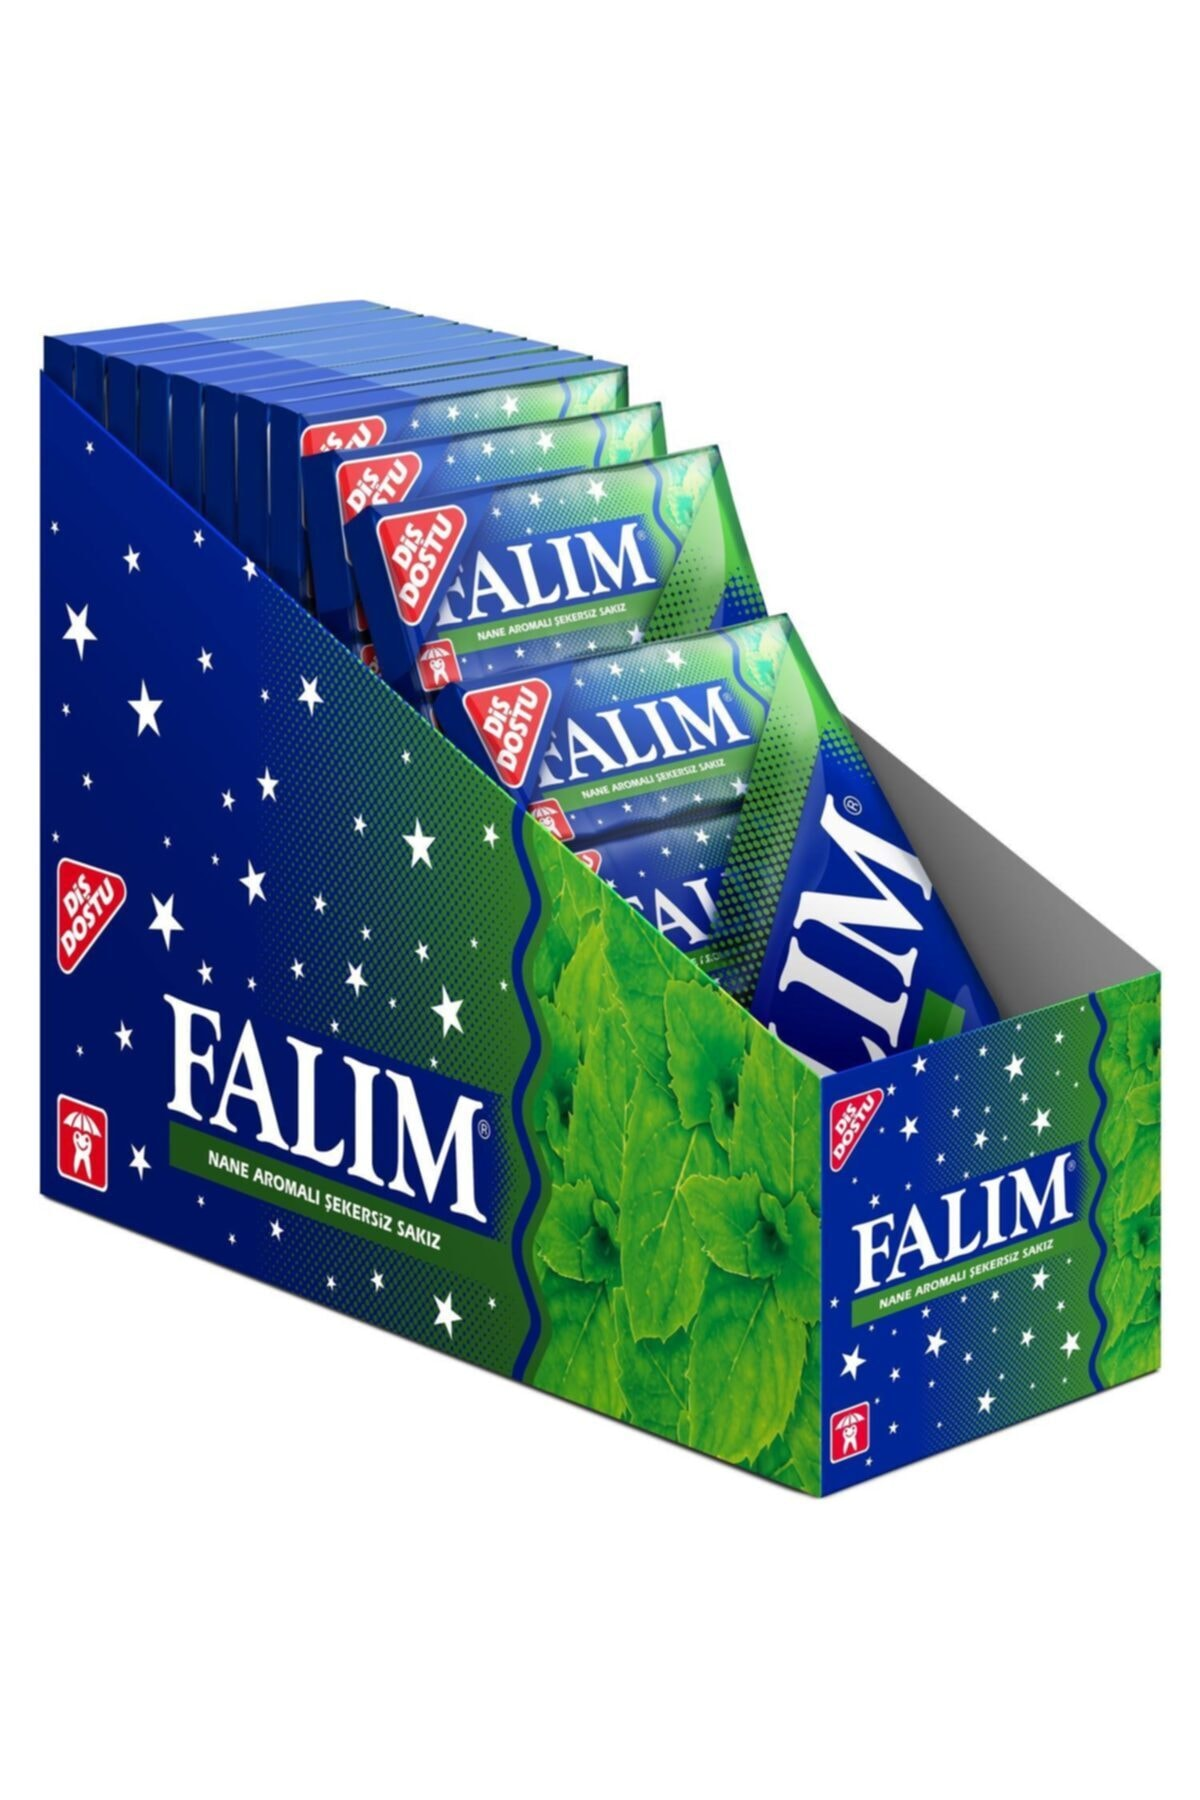 Falim 5 Pack Mint Flavored Gum 35gr 20 Pieces  FREE SHİPPİNG